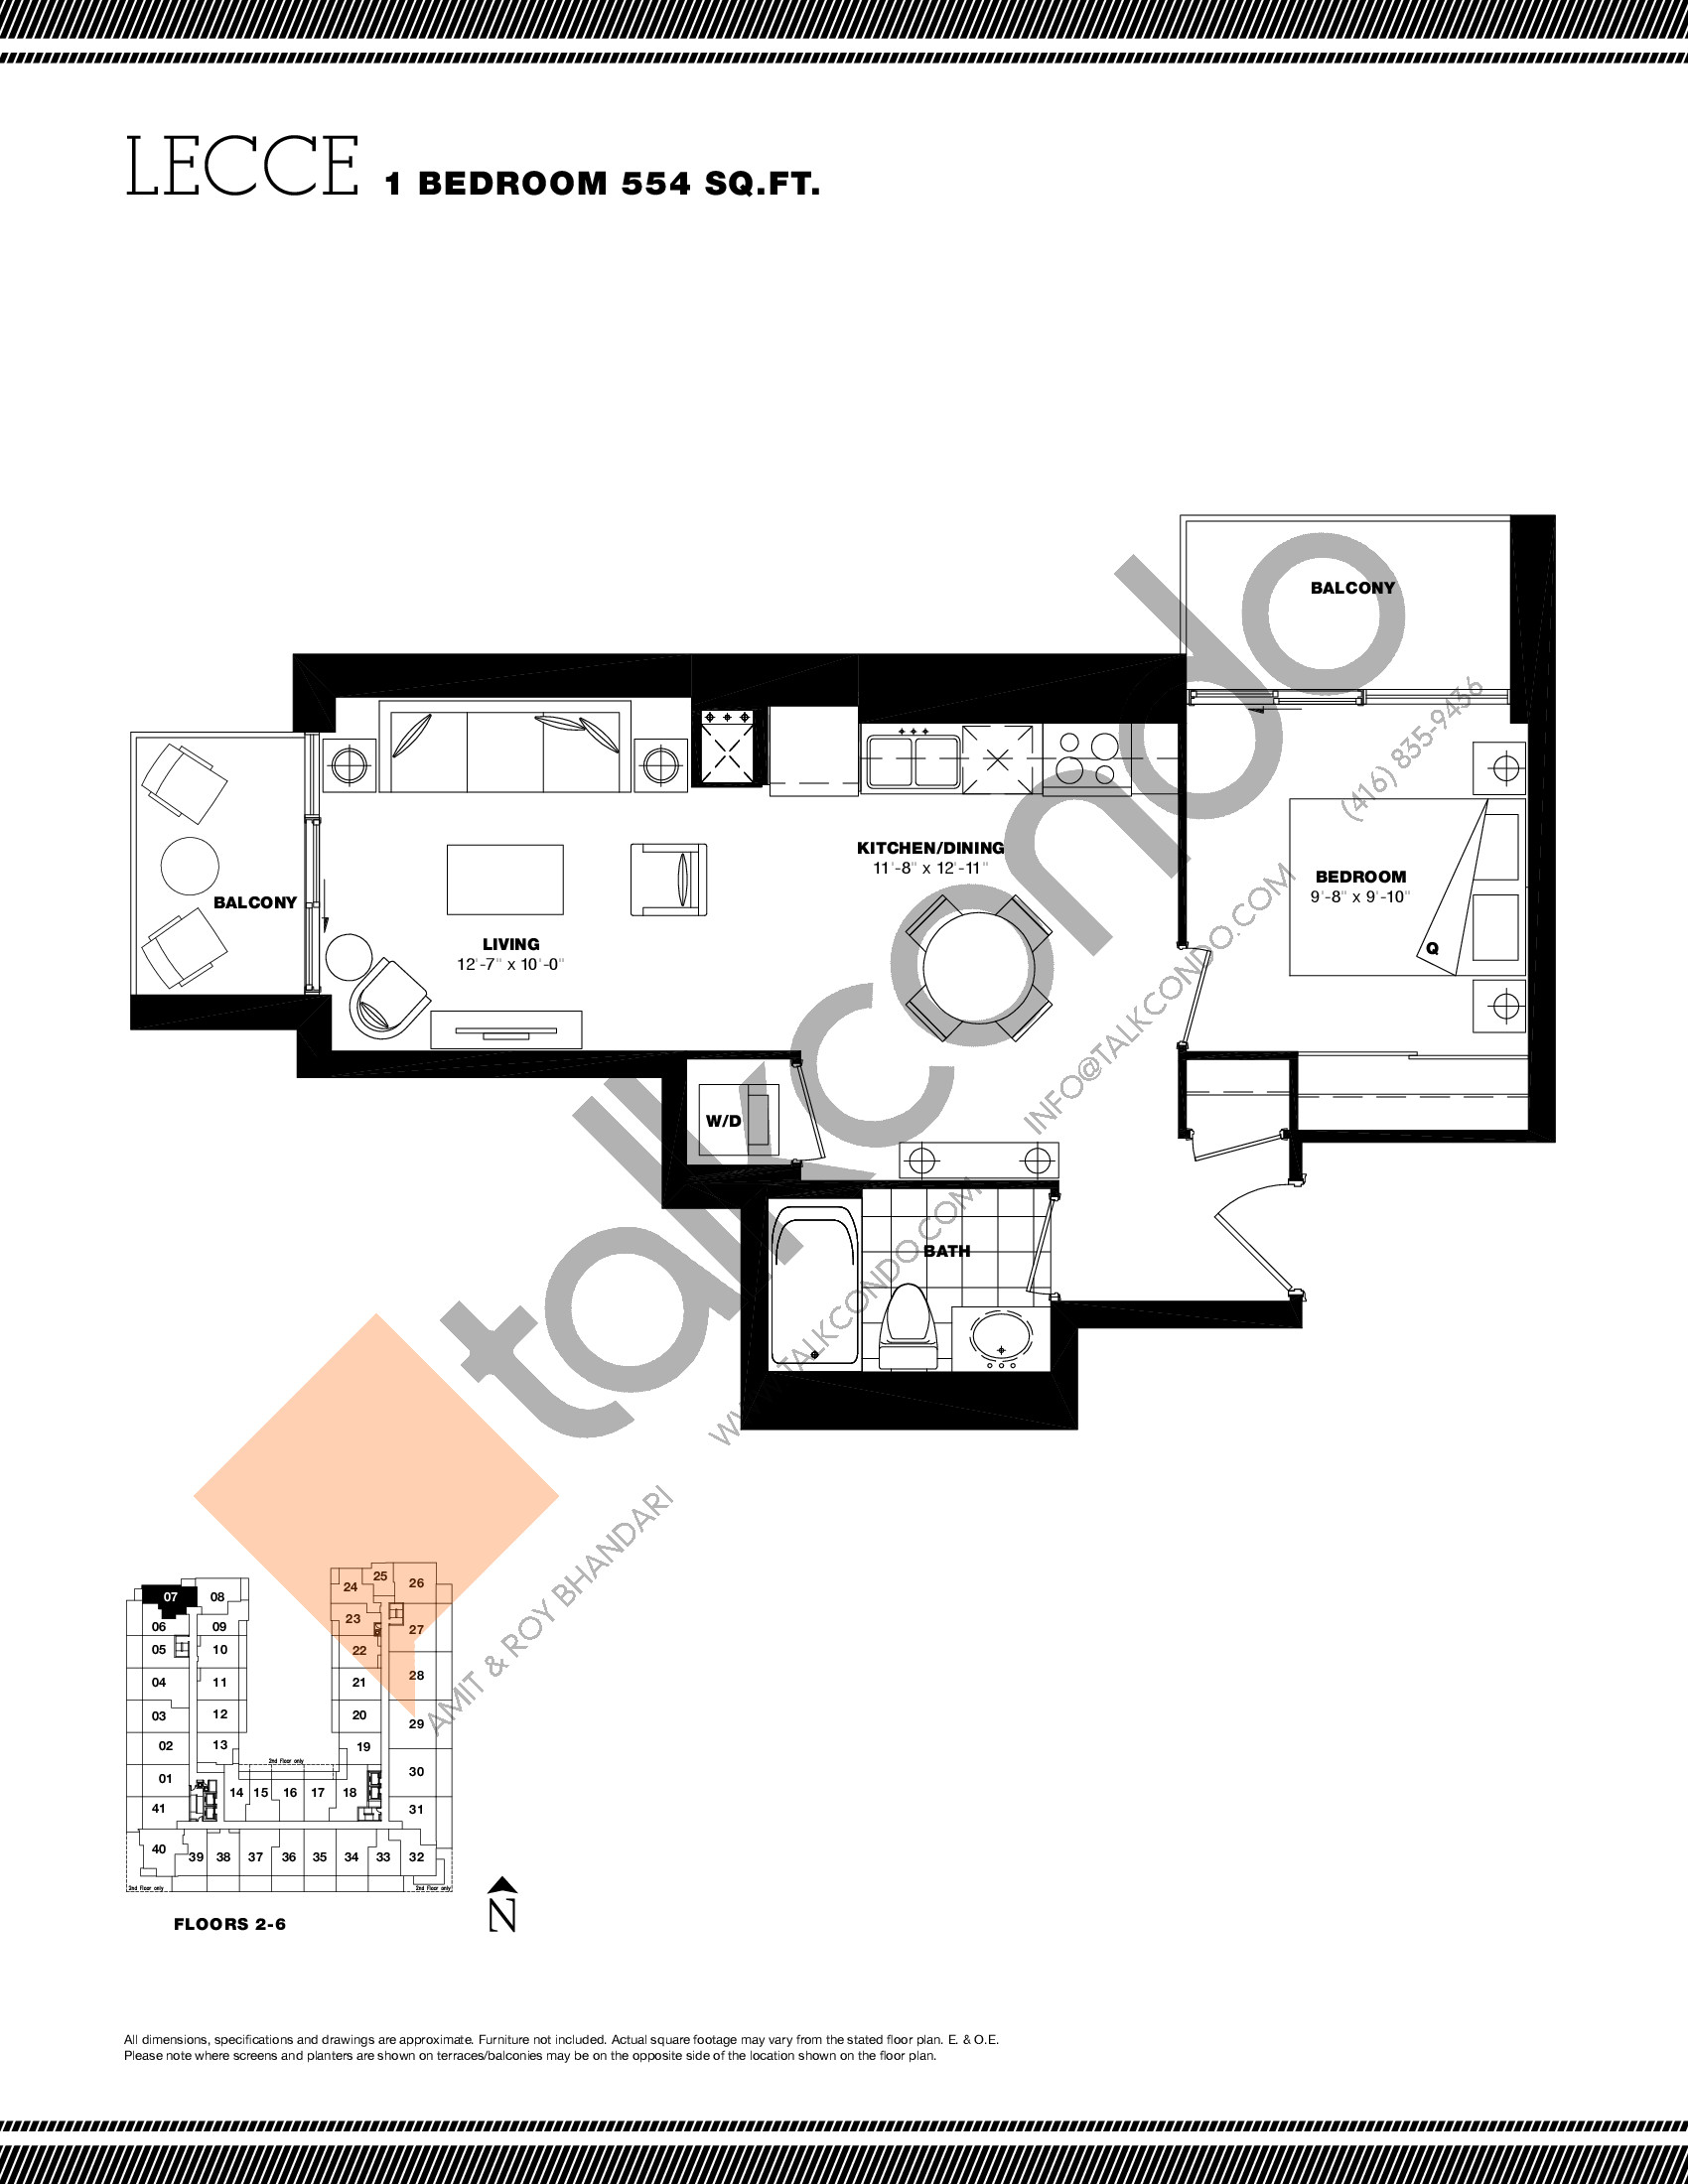 Lecce Floor Plan at Residenze Palazzo at Treviso 3 Condos - 554 sq.ft